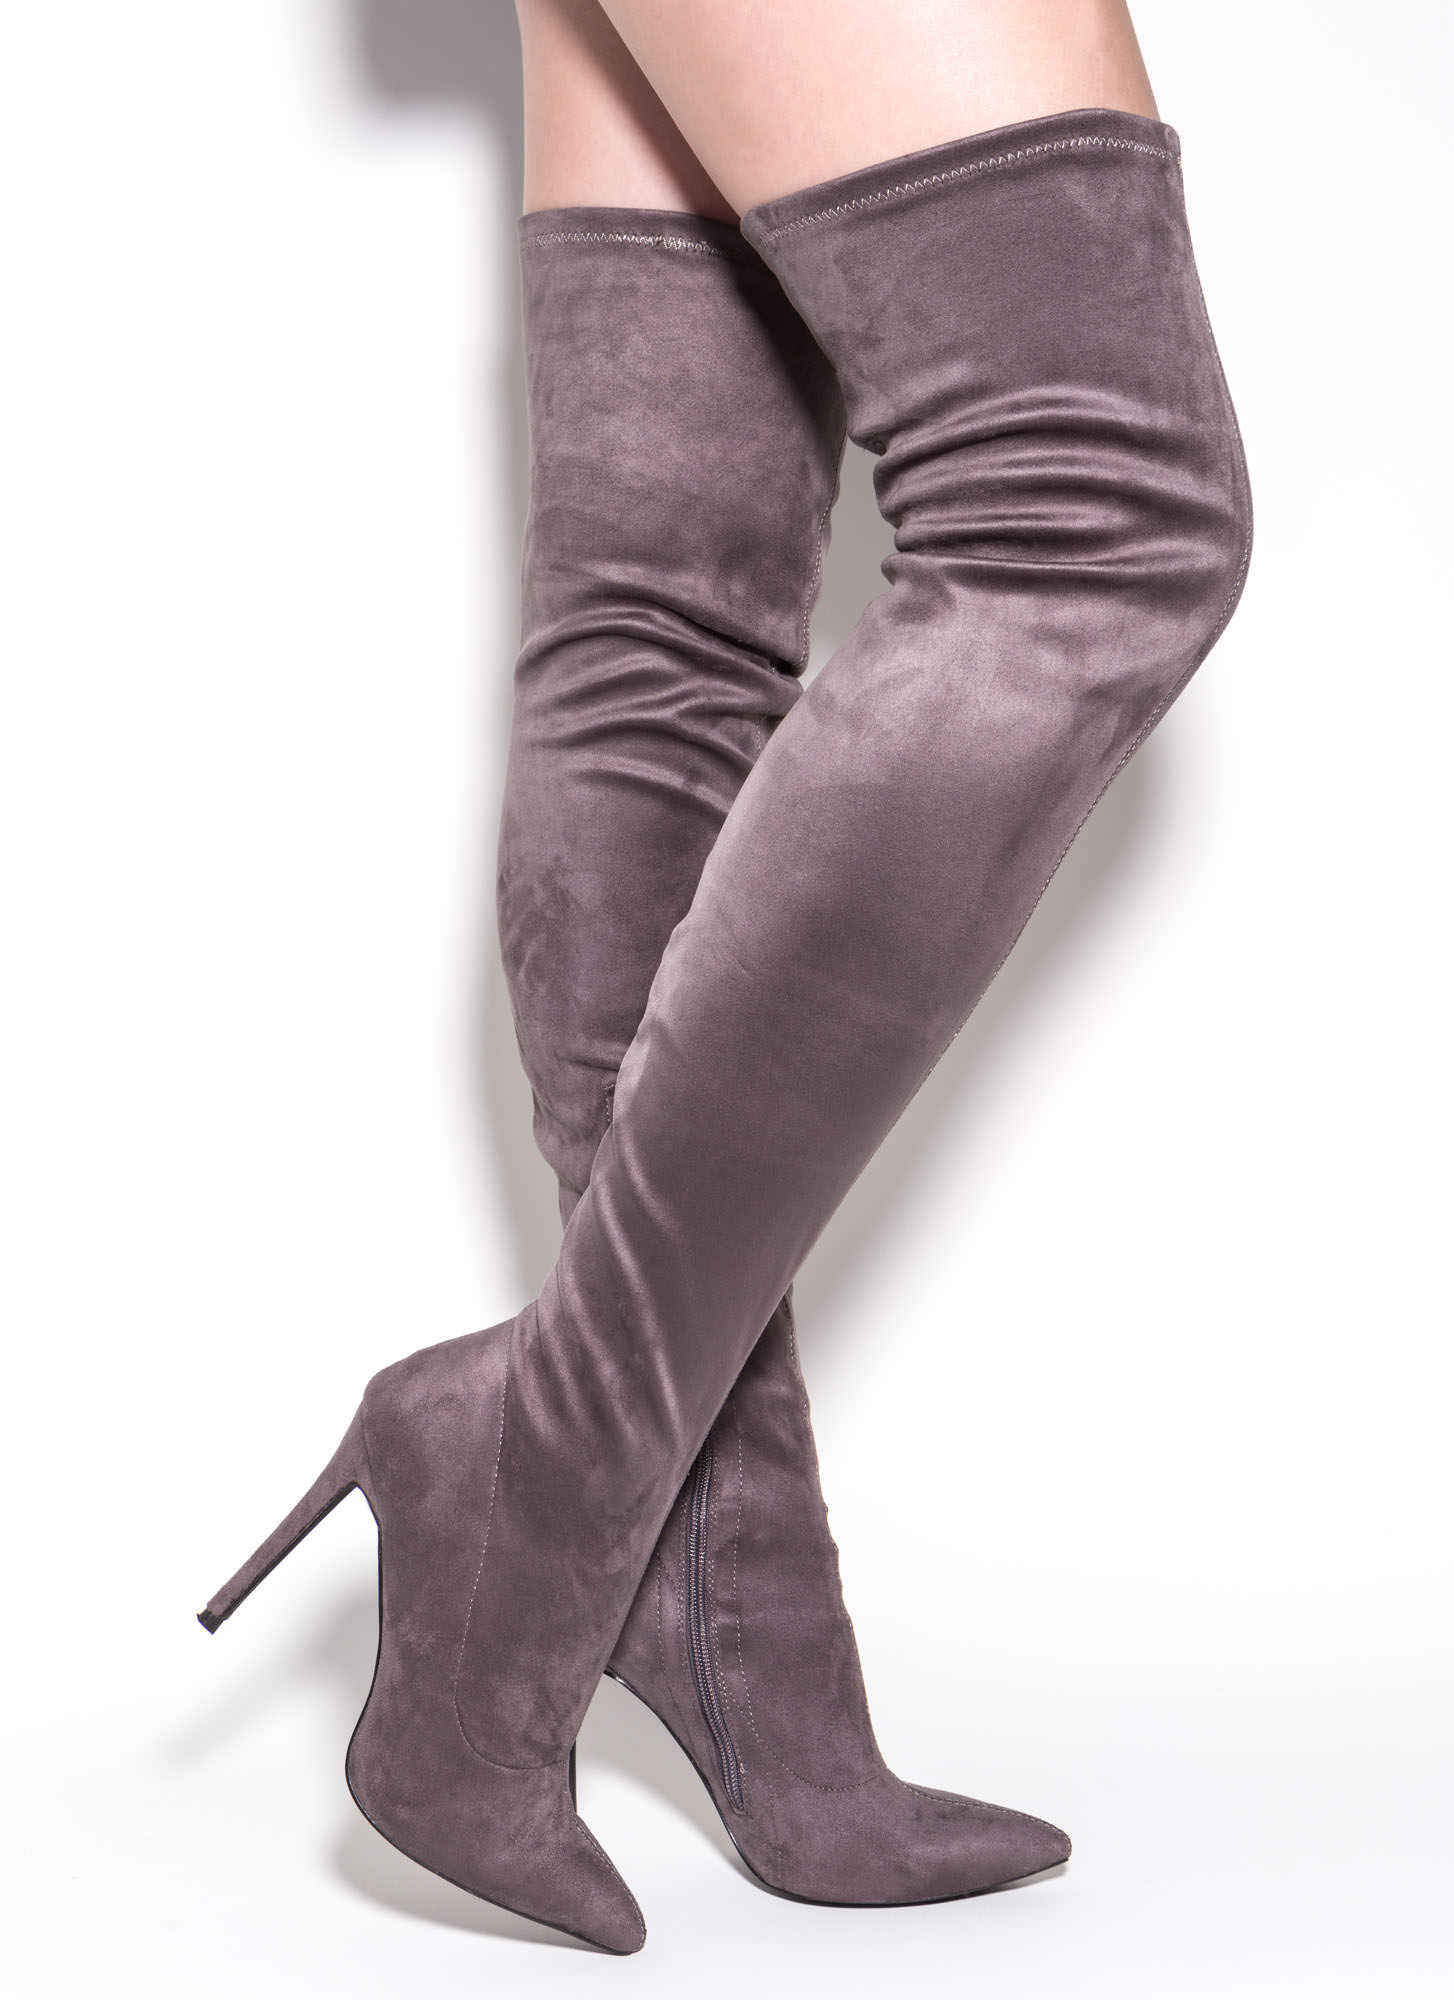 Kitten Heel Thigh High Boots - Is Heel